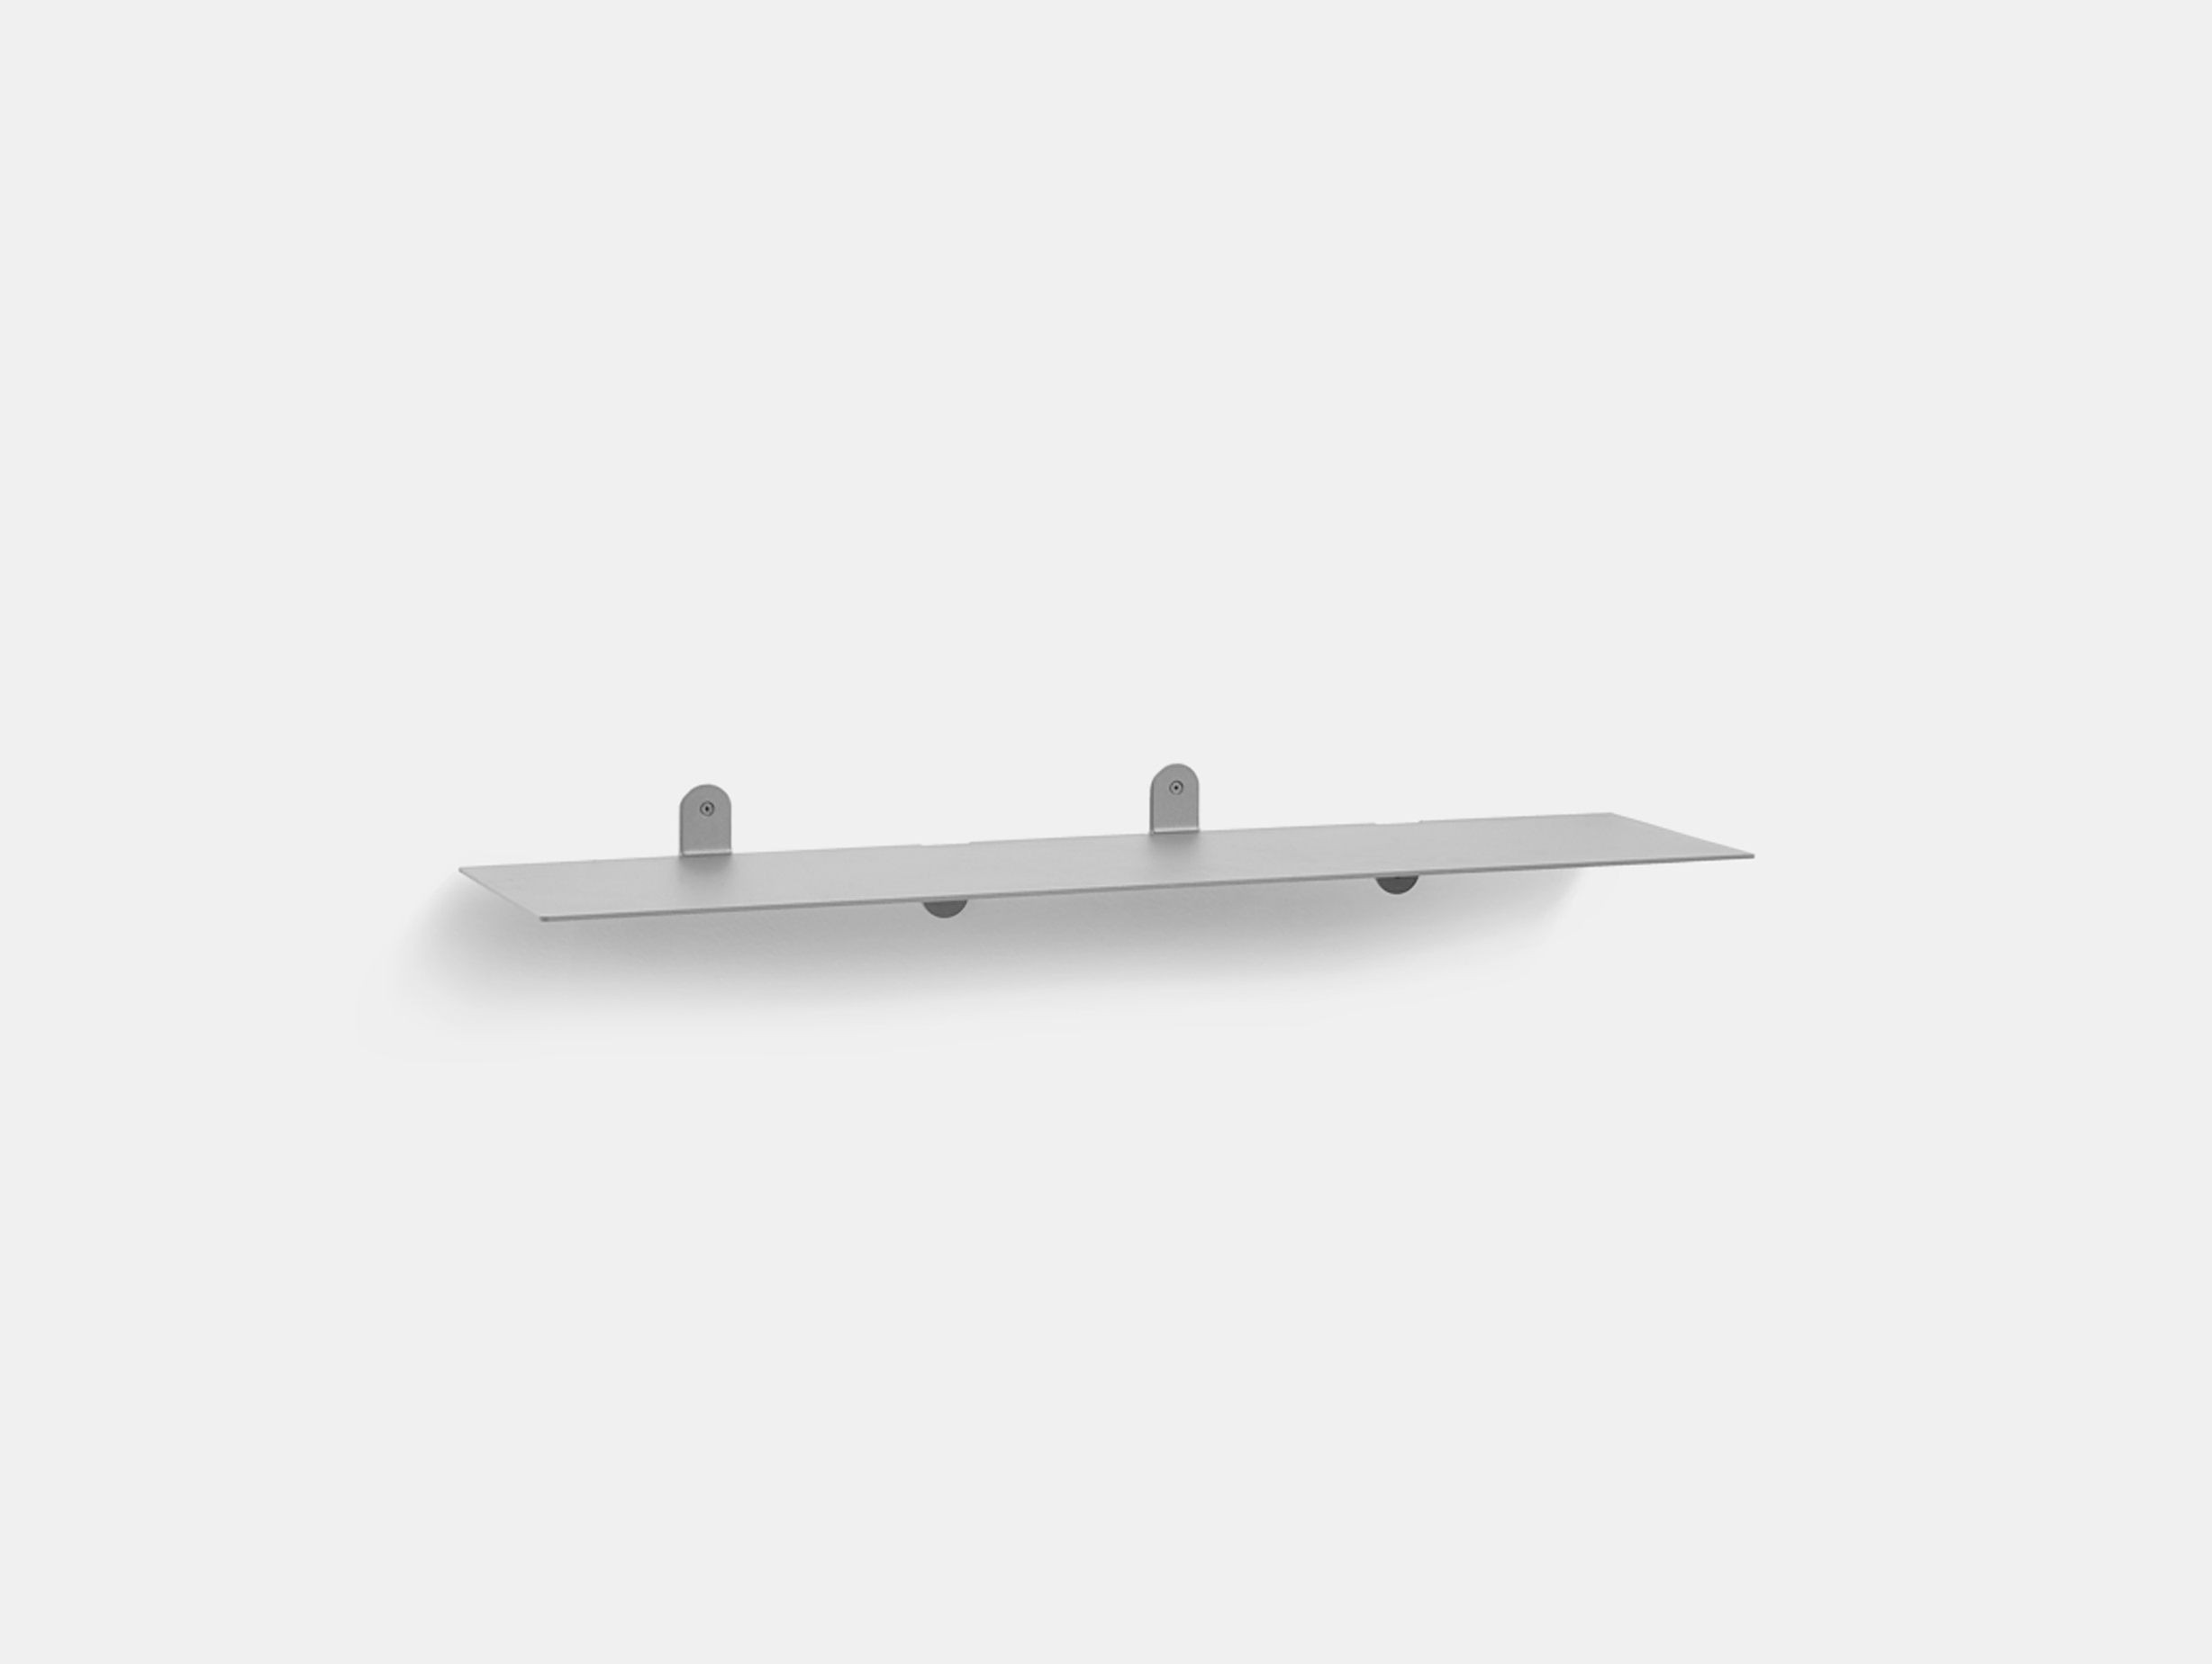 Valerie Objects Shelf No 1 2 3 4 V9017101 Lg Muller Van Severen